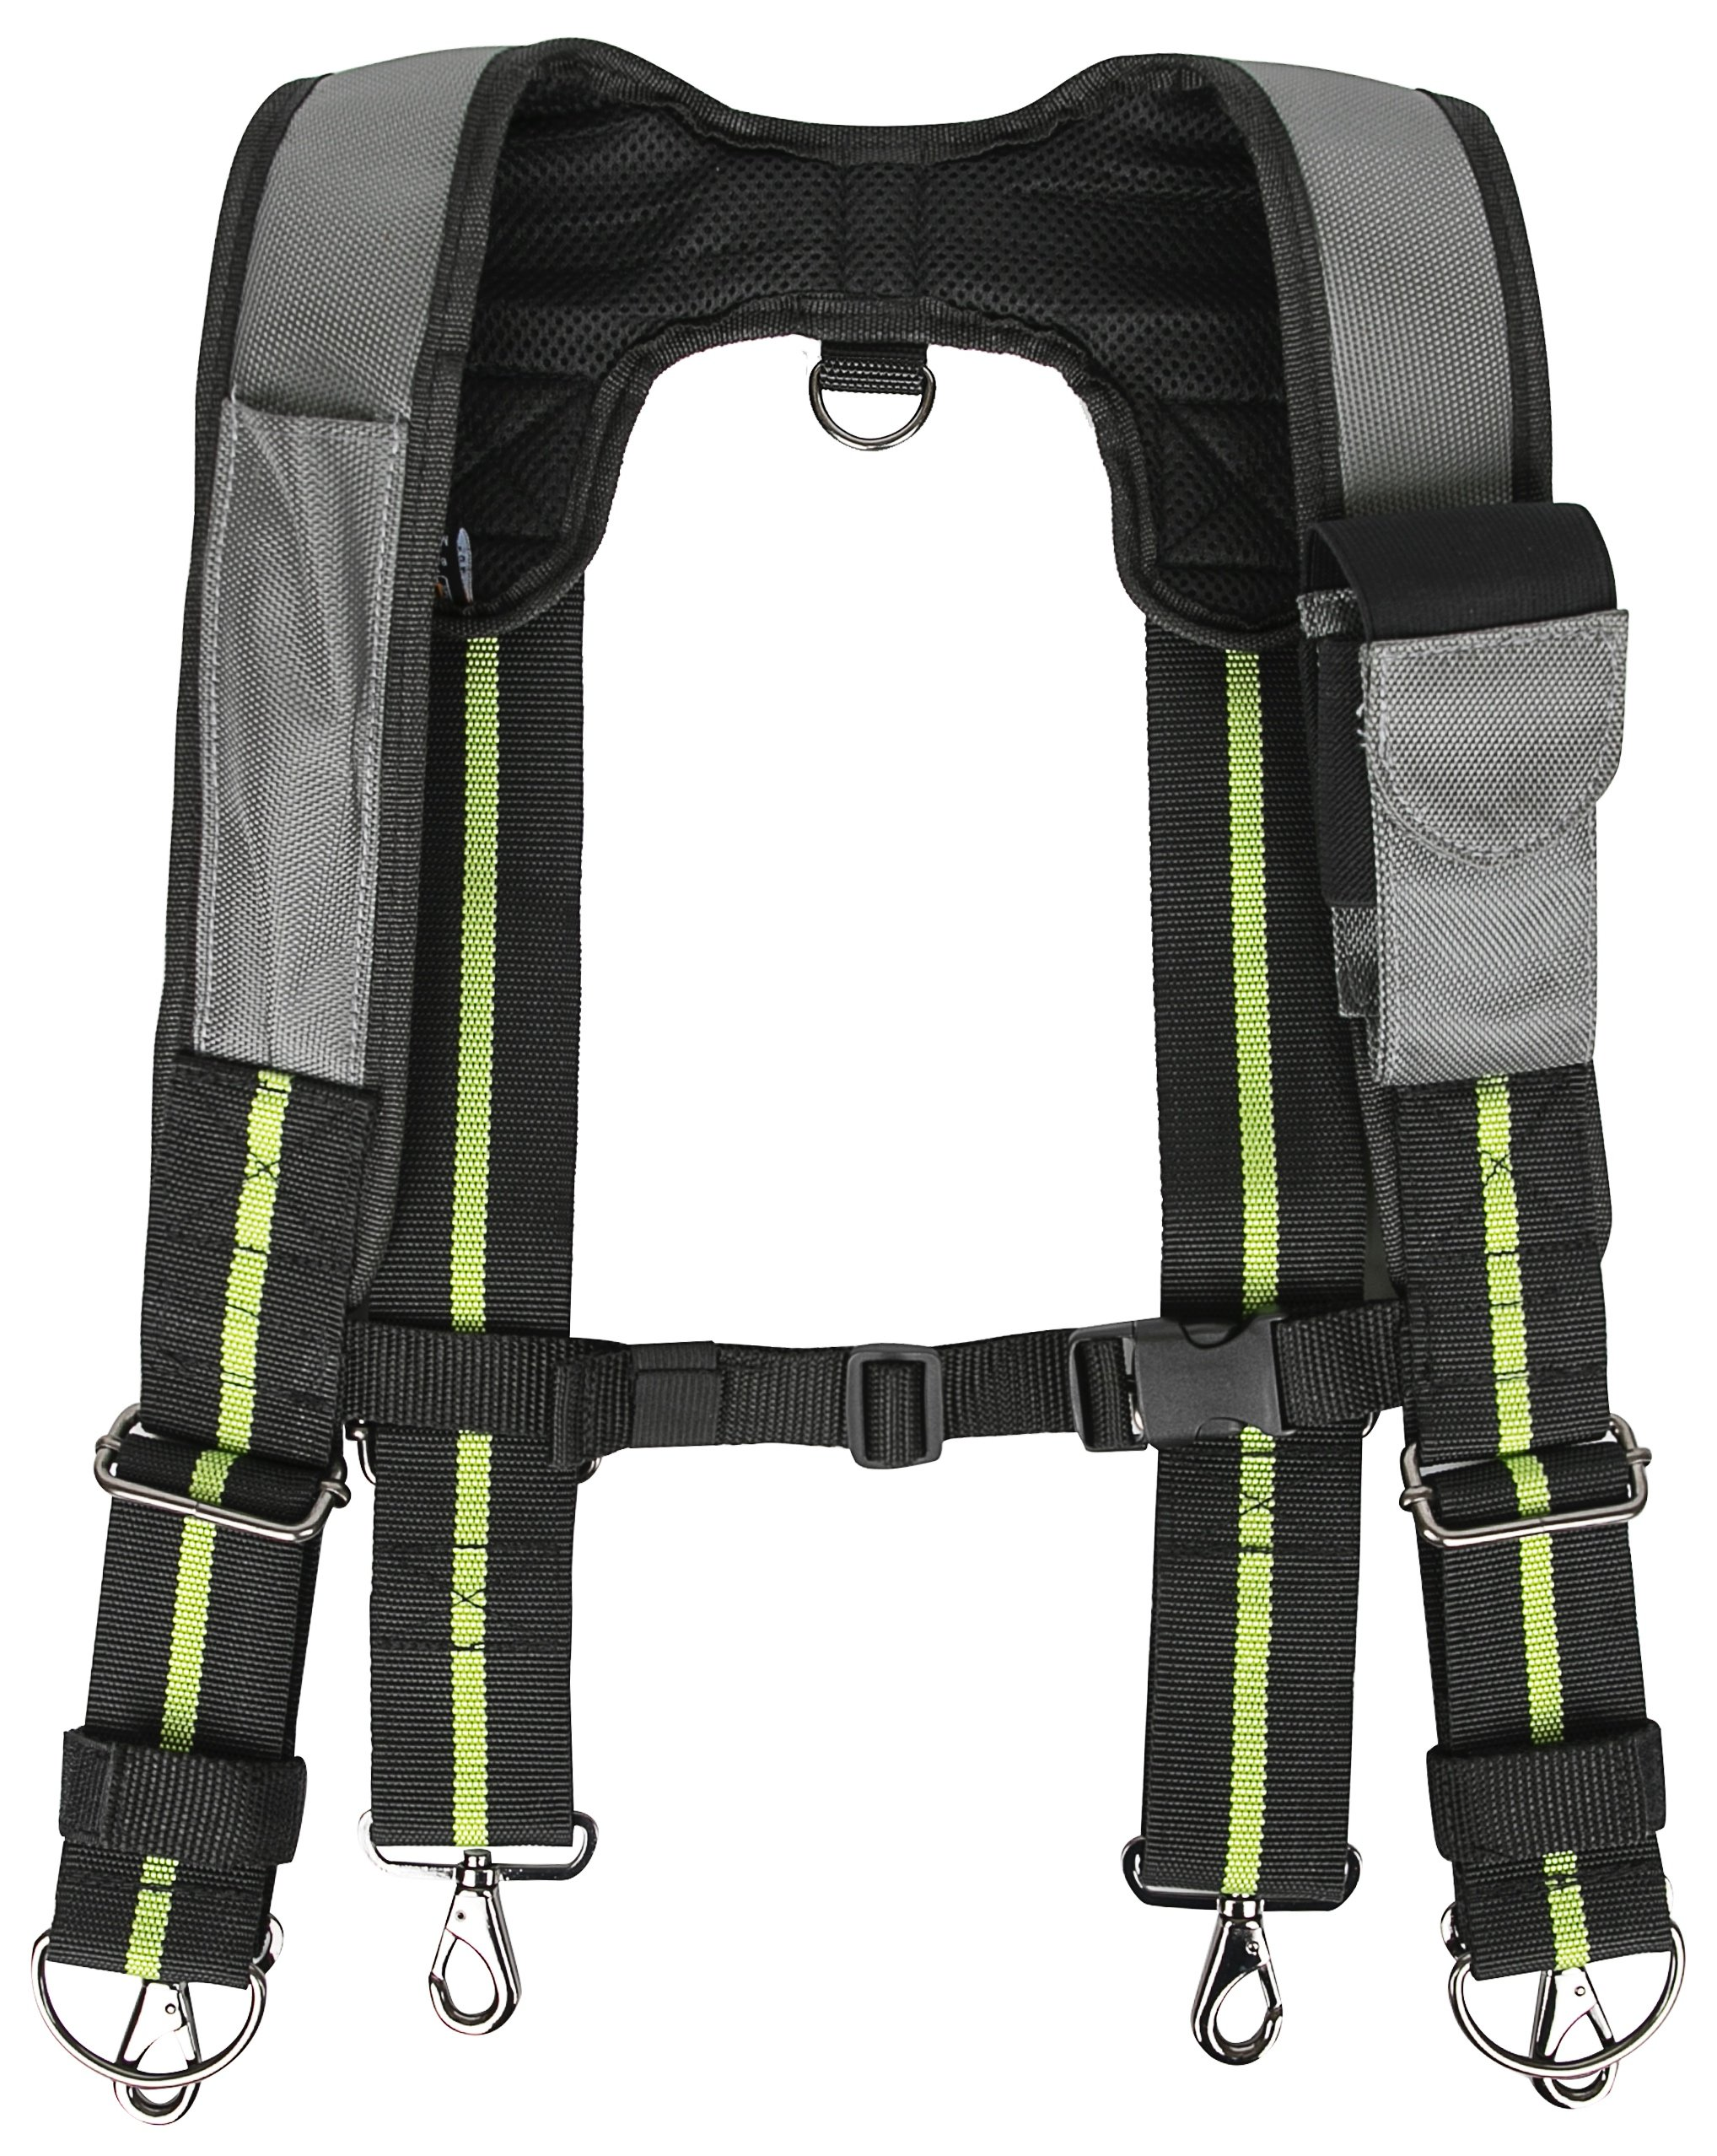 Padded Tool Belt Suspenders w/Phone Pocket, Chest Strap, Pencil Sleeve | Lightweight Comfortable & Strong Durable | Adjustable 1680D Ballistic Nylon | Contractor Grade Framer Suspension Rig